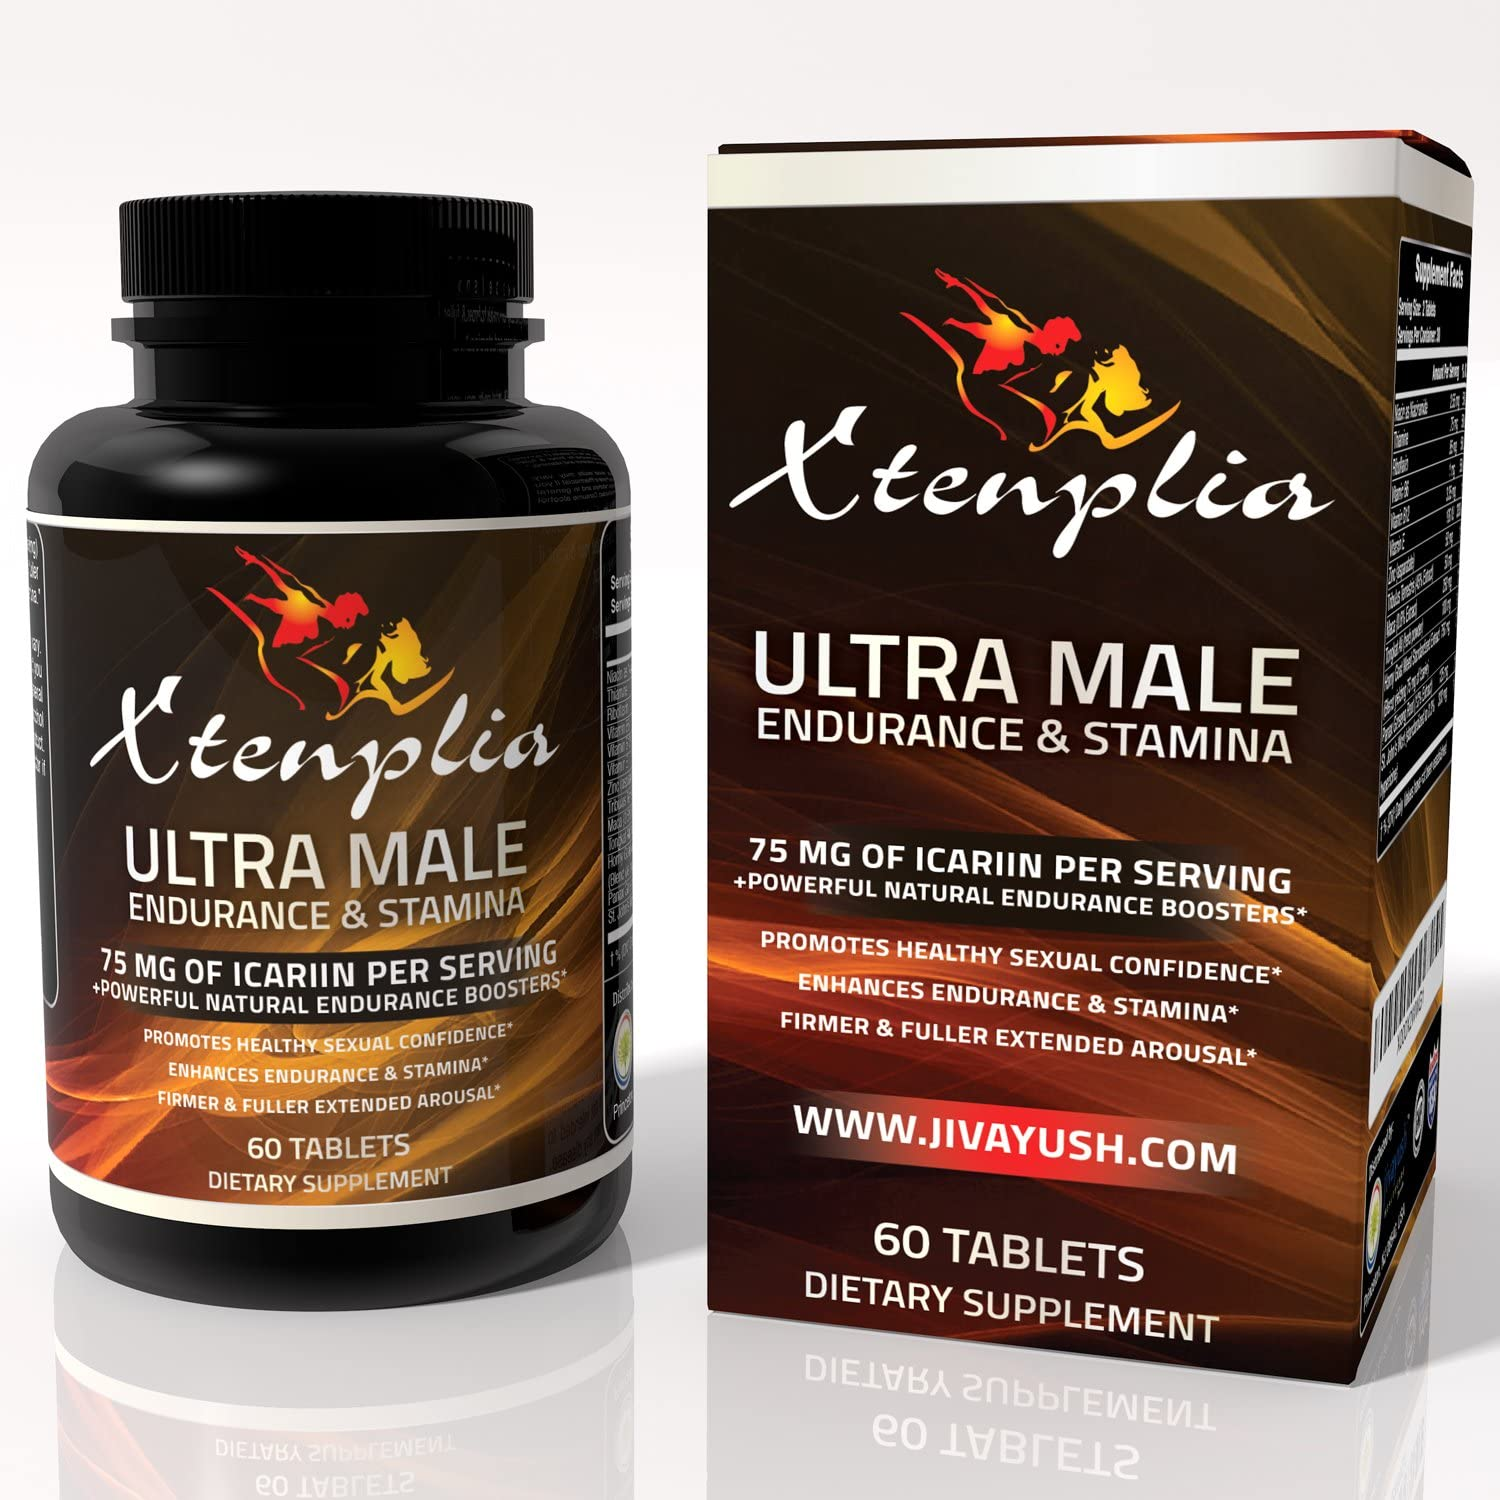 Xtenplia Ultra Male, Energy Stamina Pills – Natural Endurance and Stamina